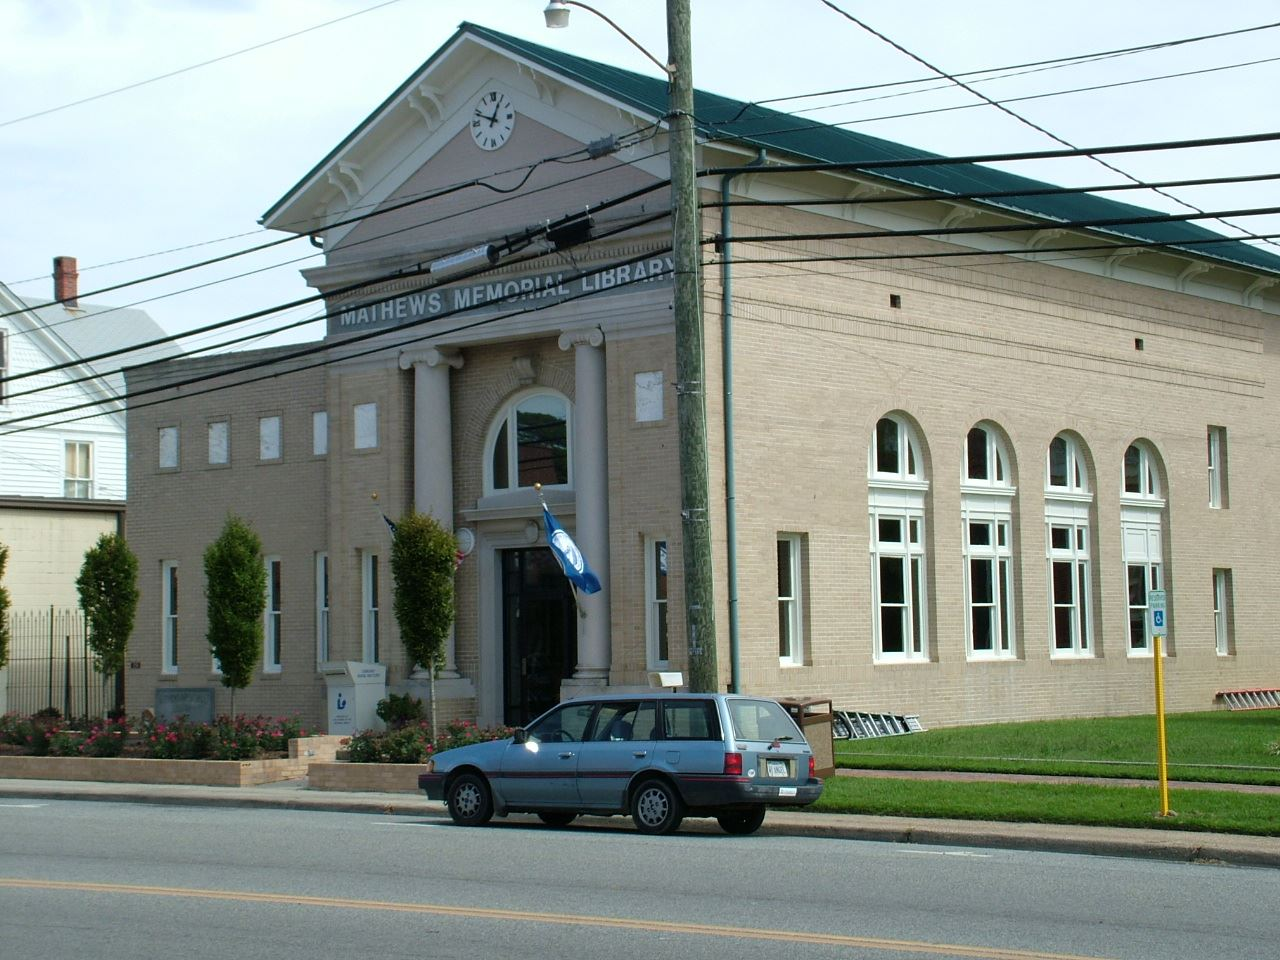 Mathews Memorial Library (JPG)